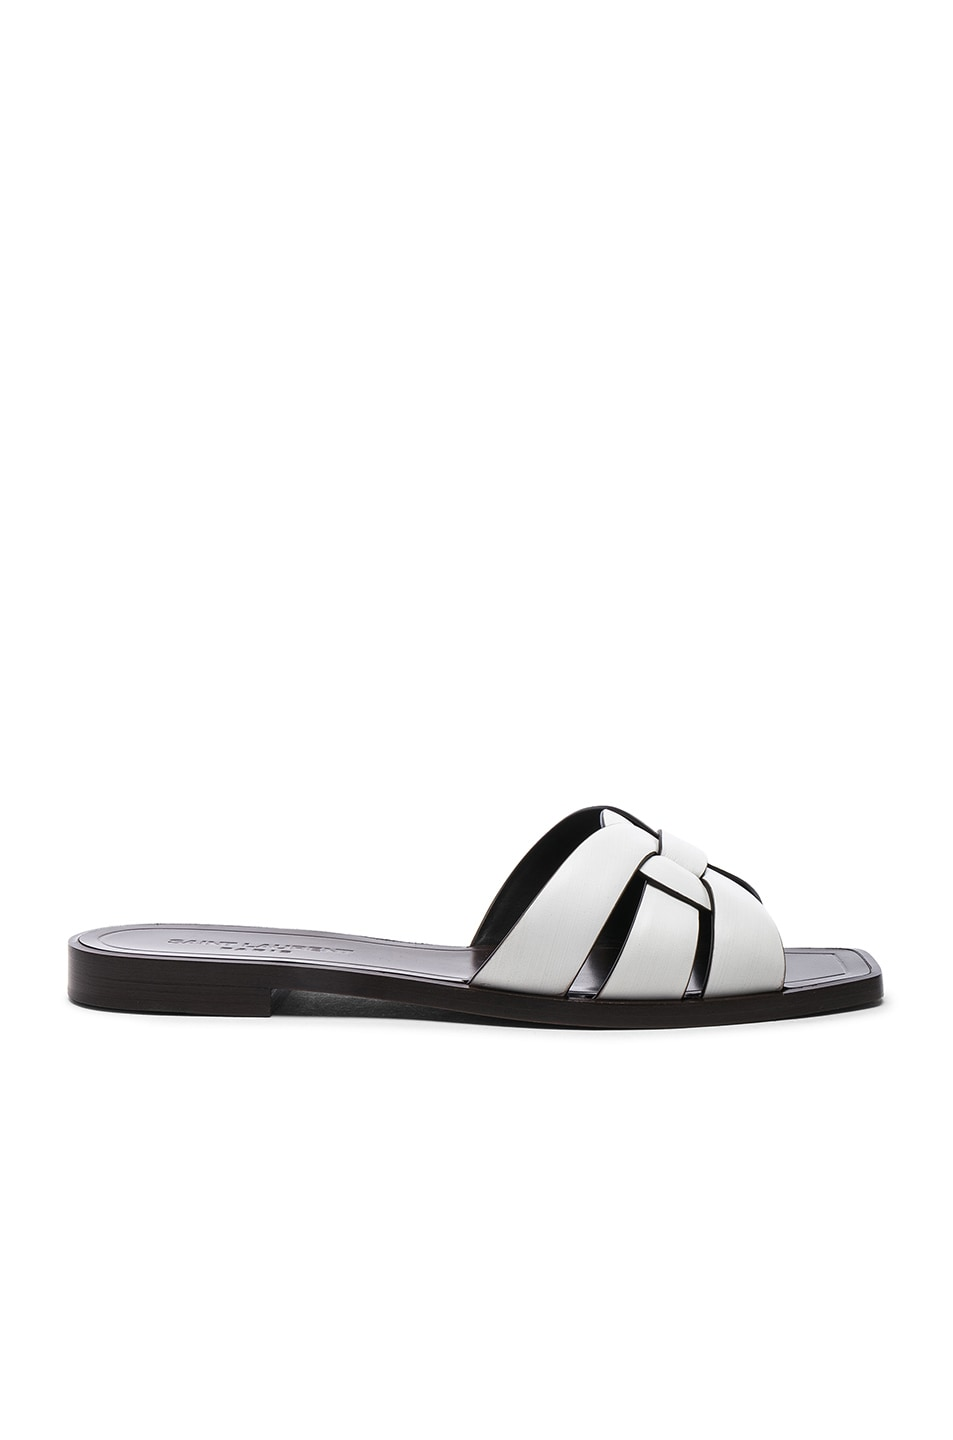 Image 1 of Saint Laurent Leather Nu Pieds Slides in Optic White